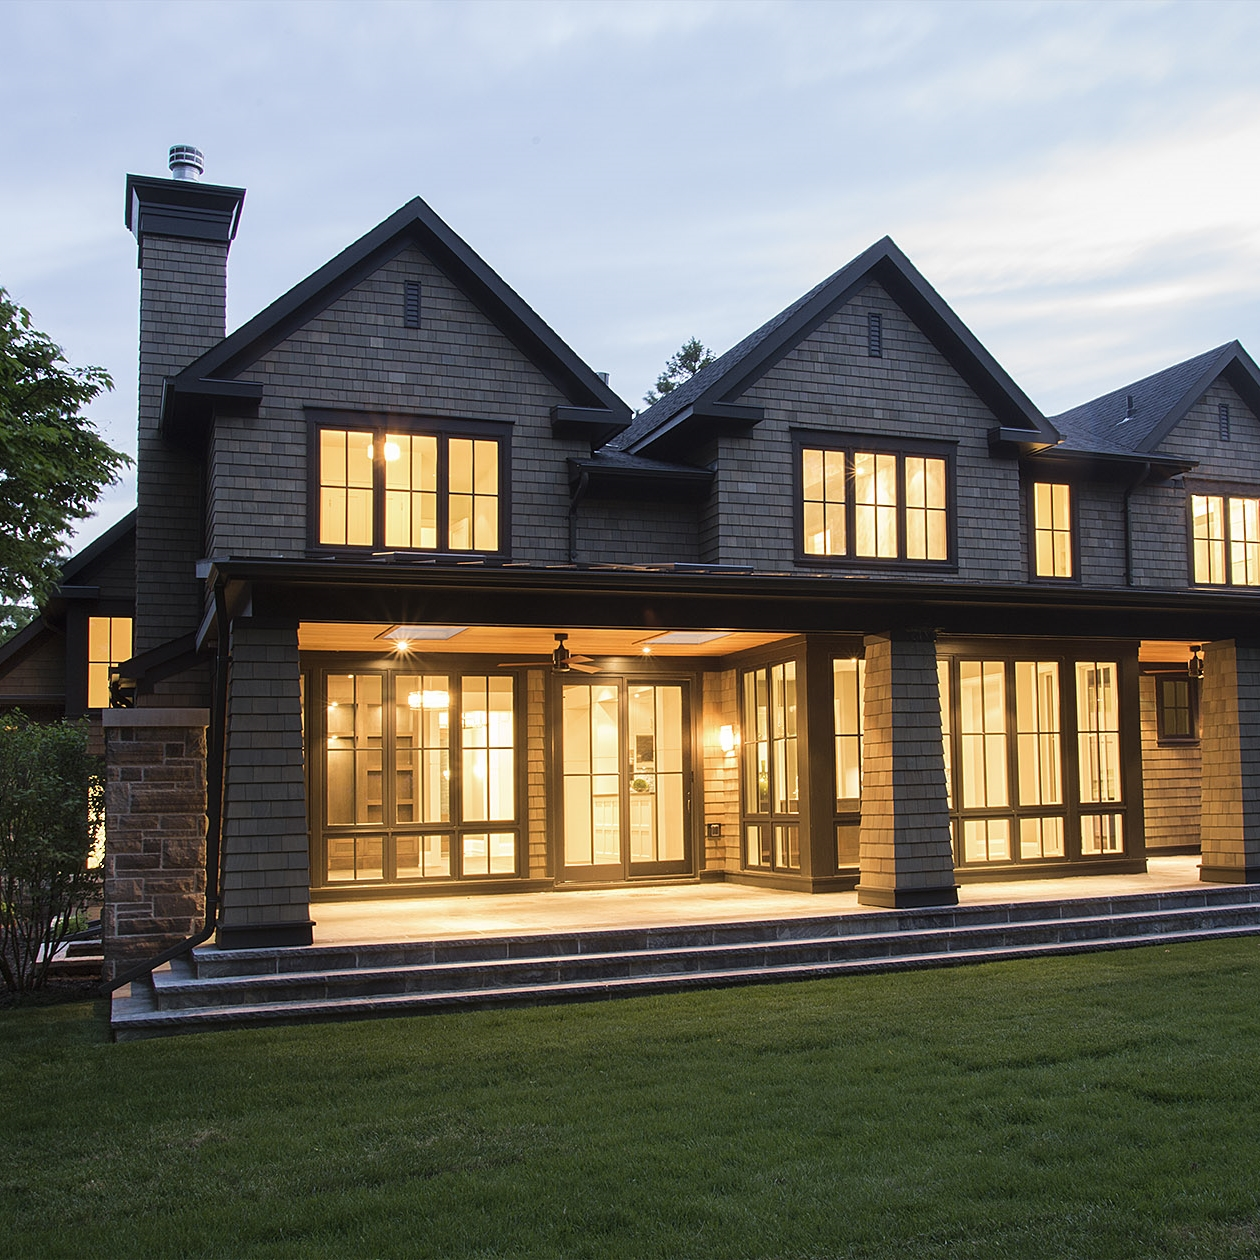 2014 Winner - OHBA Most Outstanding New Home